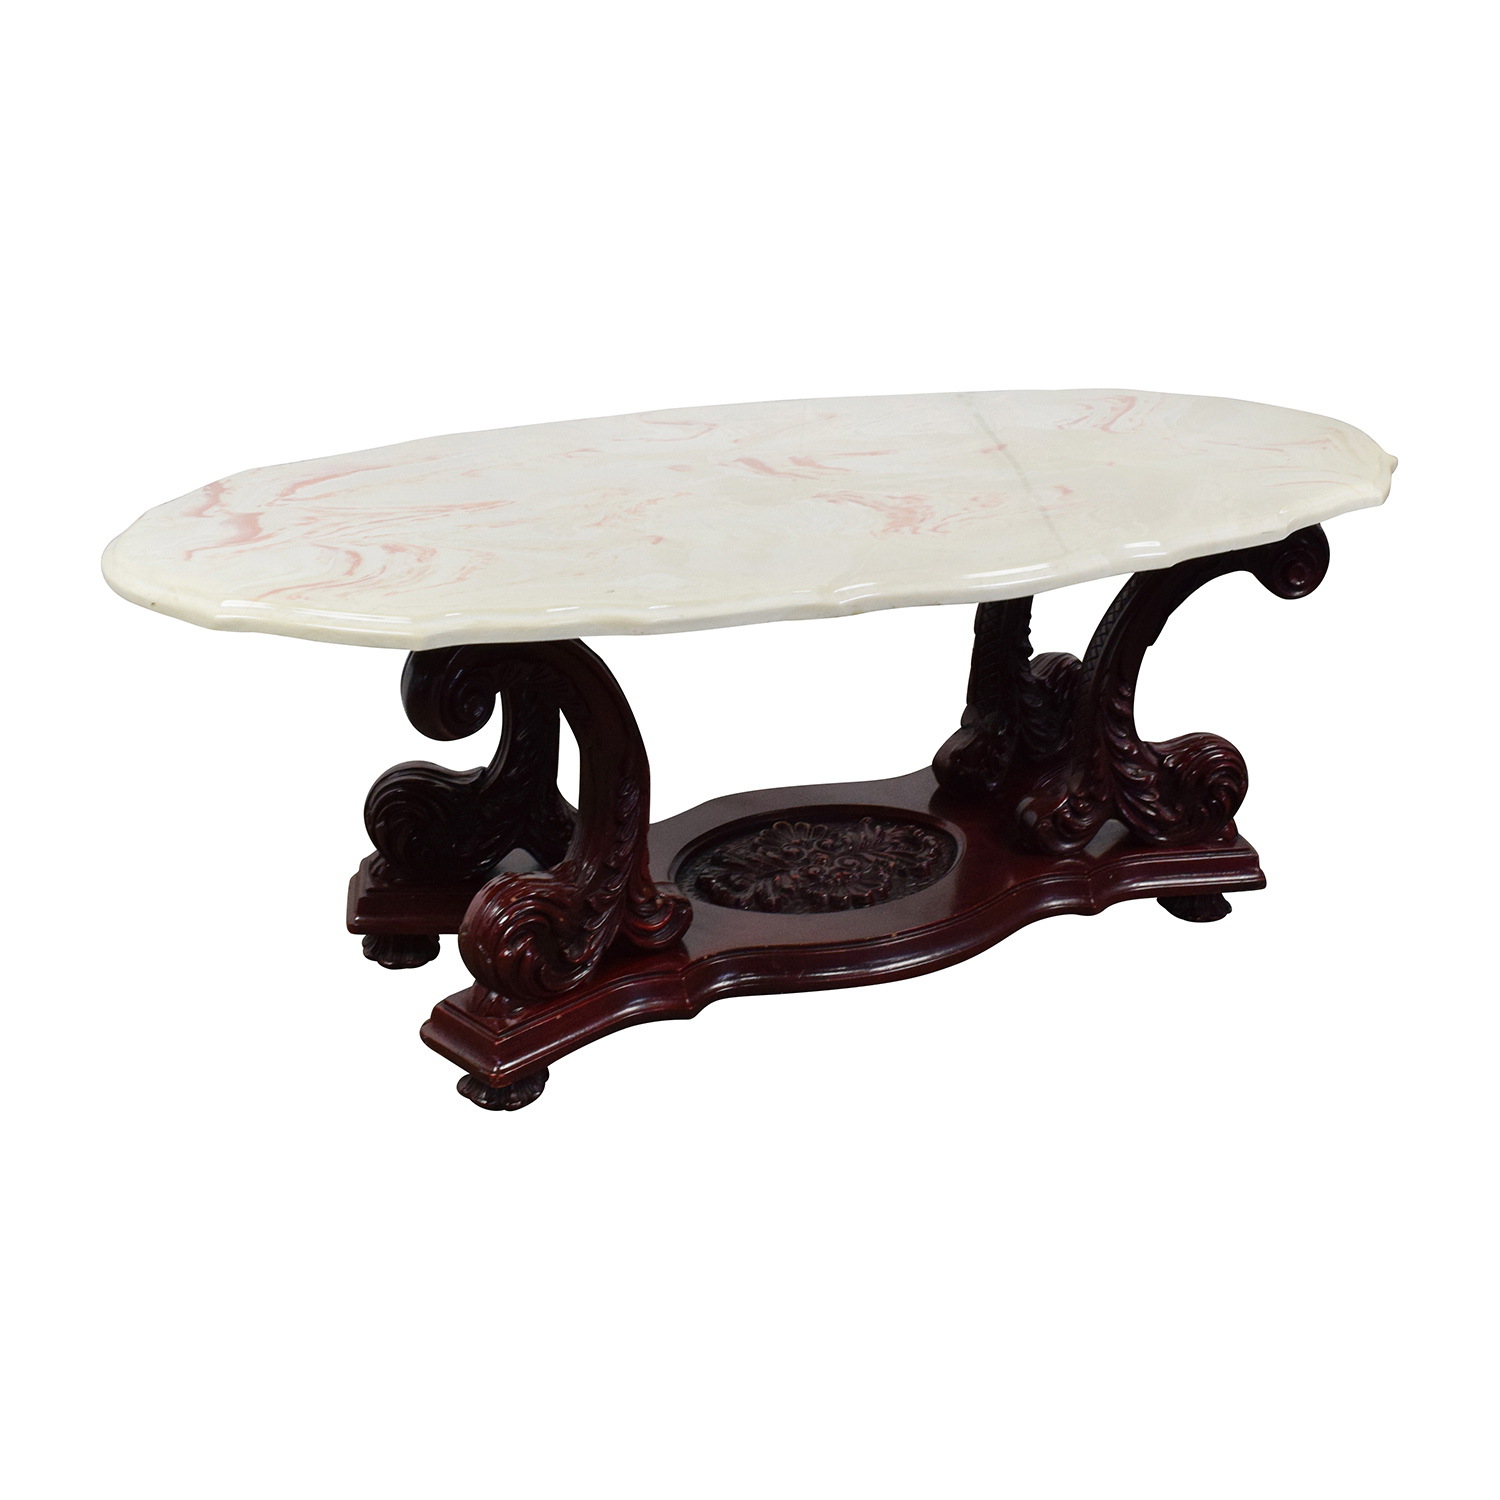 OFF Marble Top Coffee Table with Burgundy Carved Wood Tables